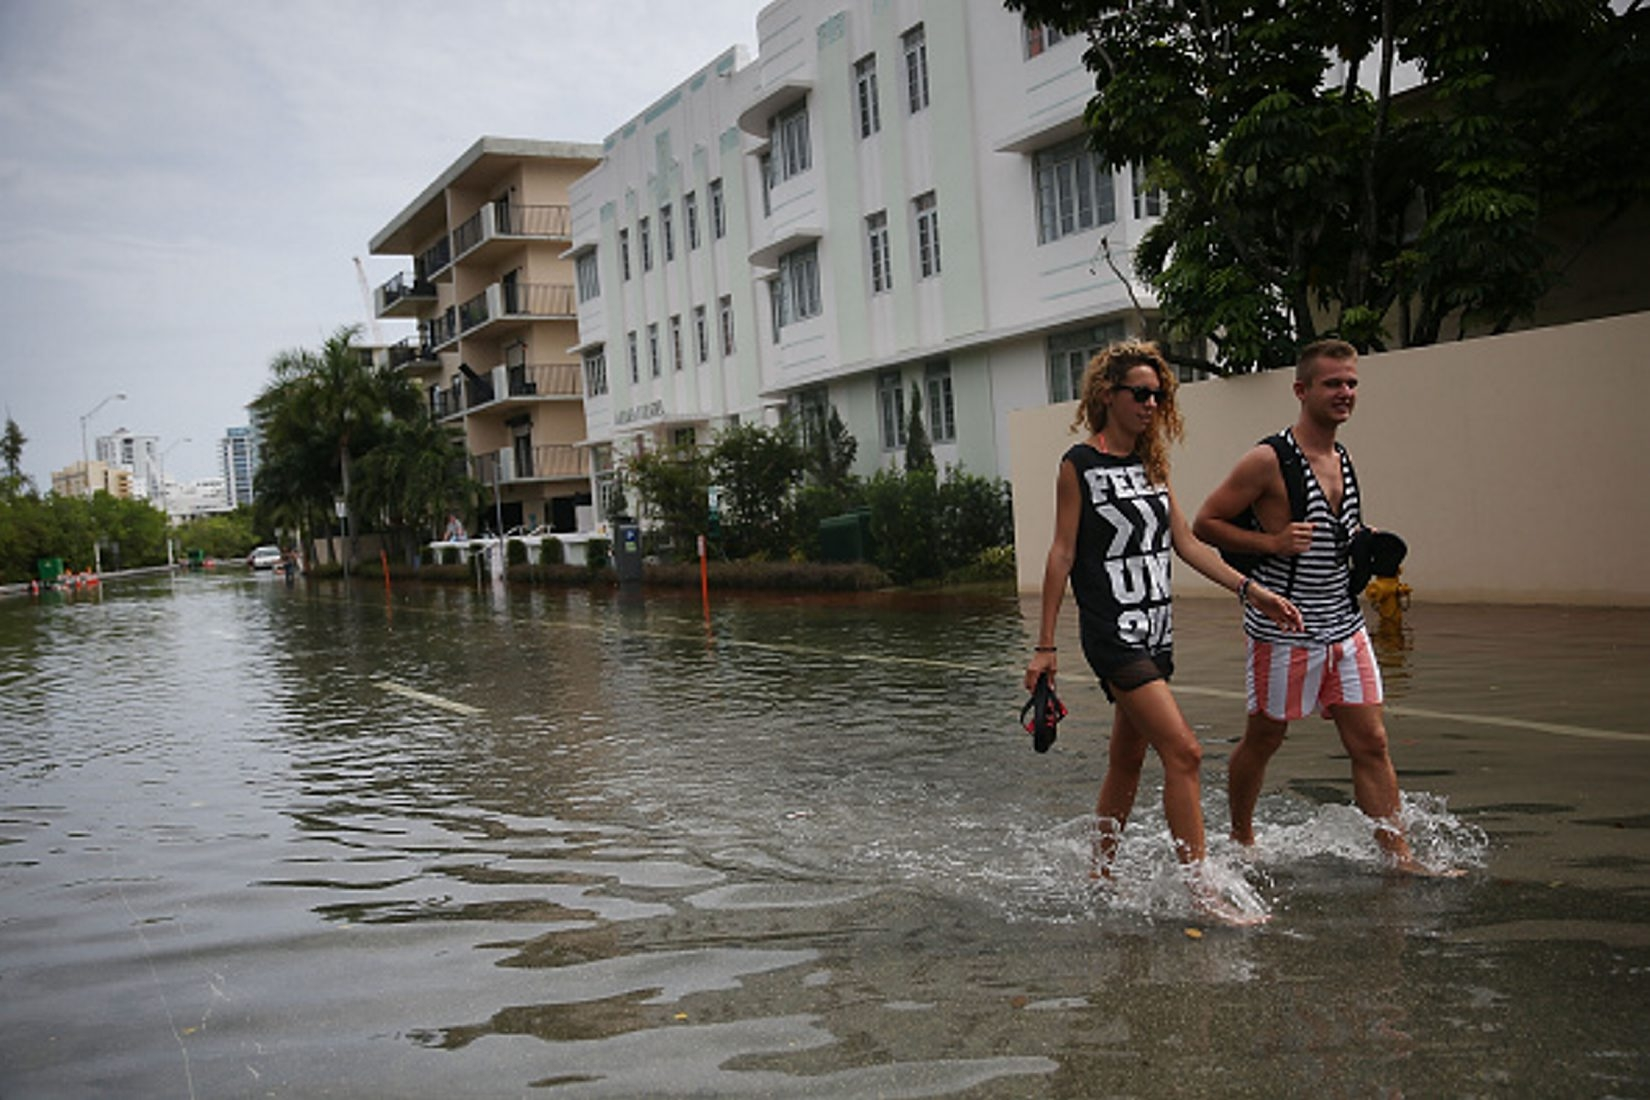 Miami Beach is just one coastal community facing an increasing problem with flooding. Climate change will make the problem worse. (Getty Images)